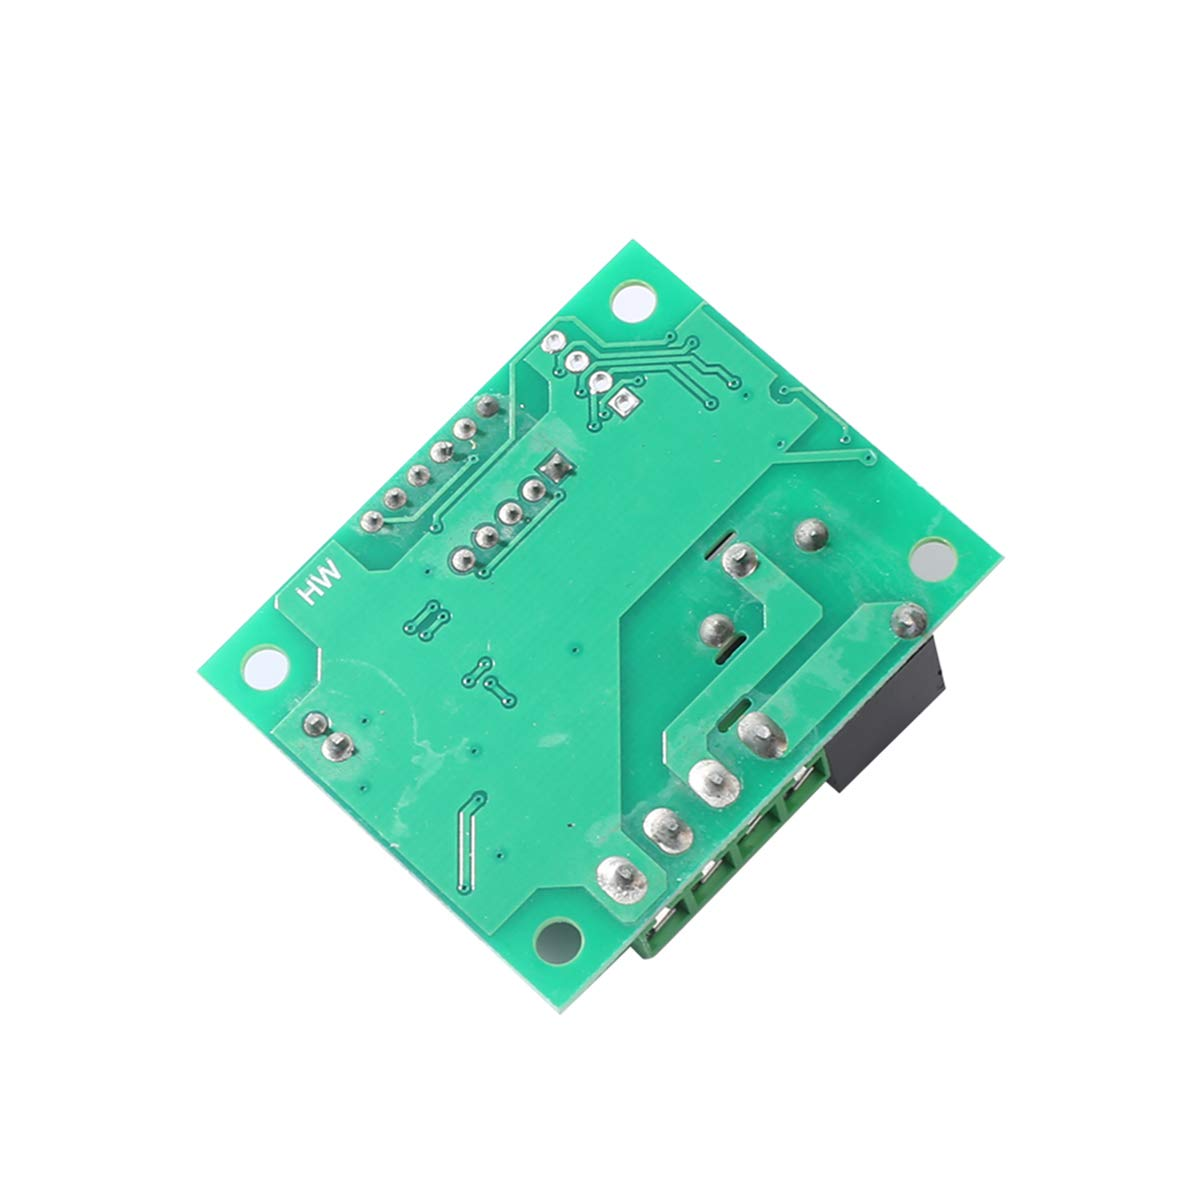 W1209 12V DC Digital Temperature Controller Board Micro Digital Thermostat 50-110/°C Electronic Temperature Cool Temp Control Module Switch with 10A One-Channel Relay and Waterproof with LED Display